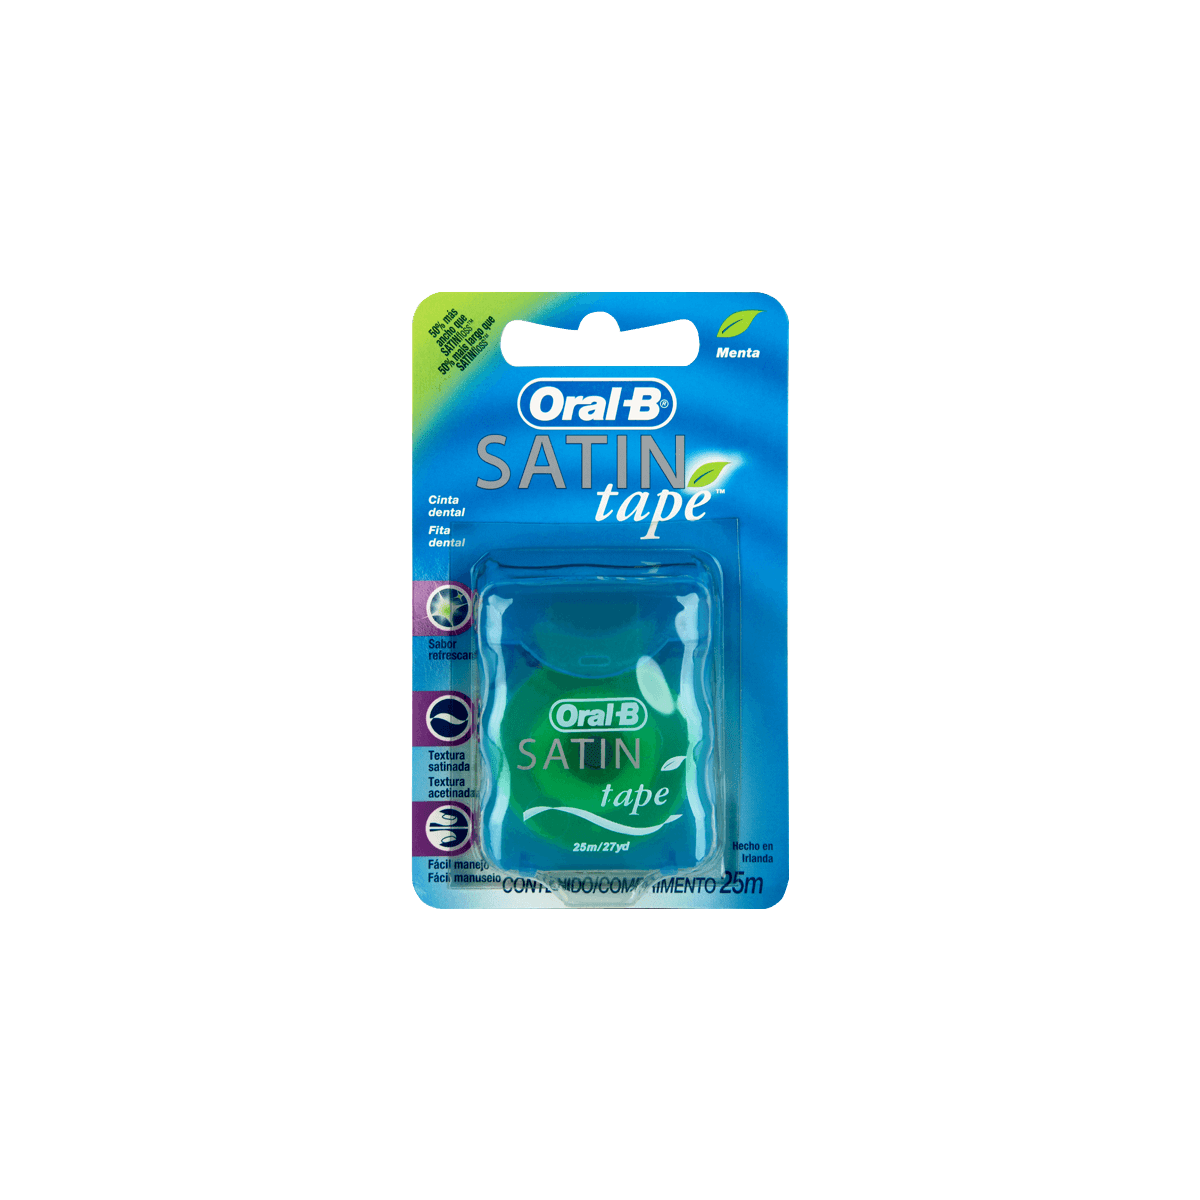 FioDental_OralB_SatinFlosseSatinTape